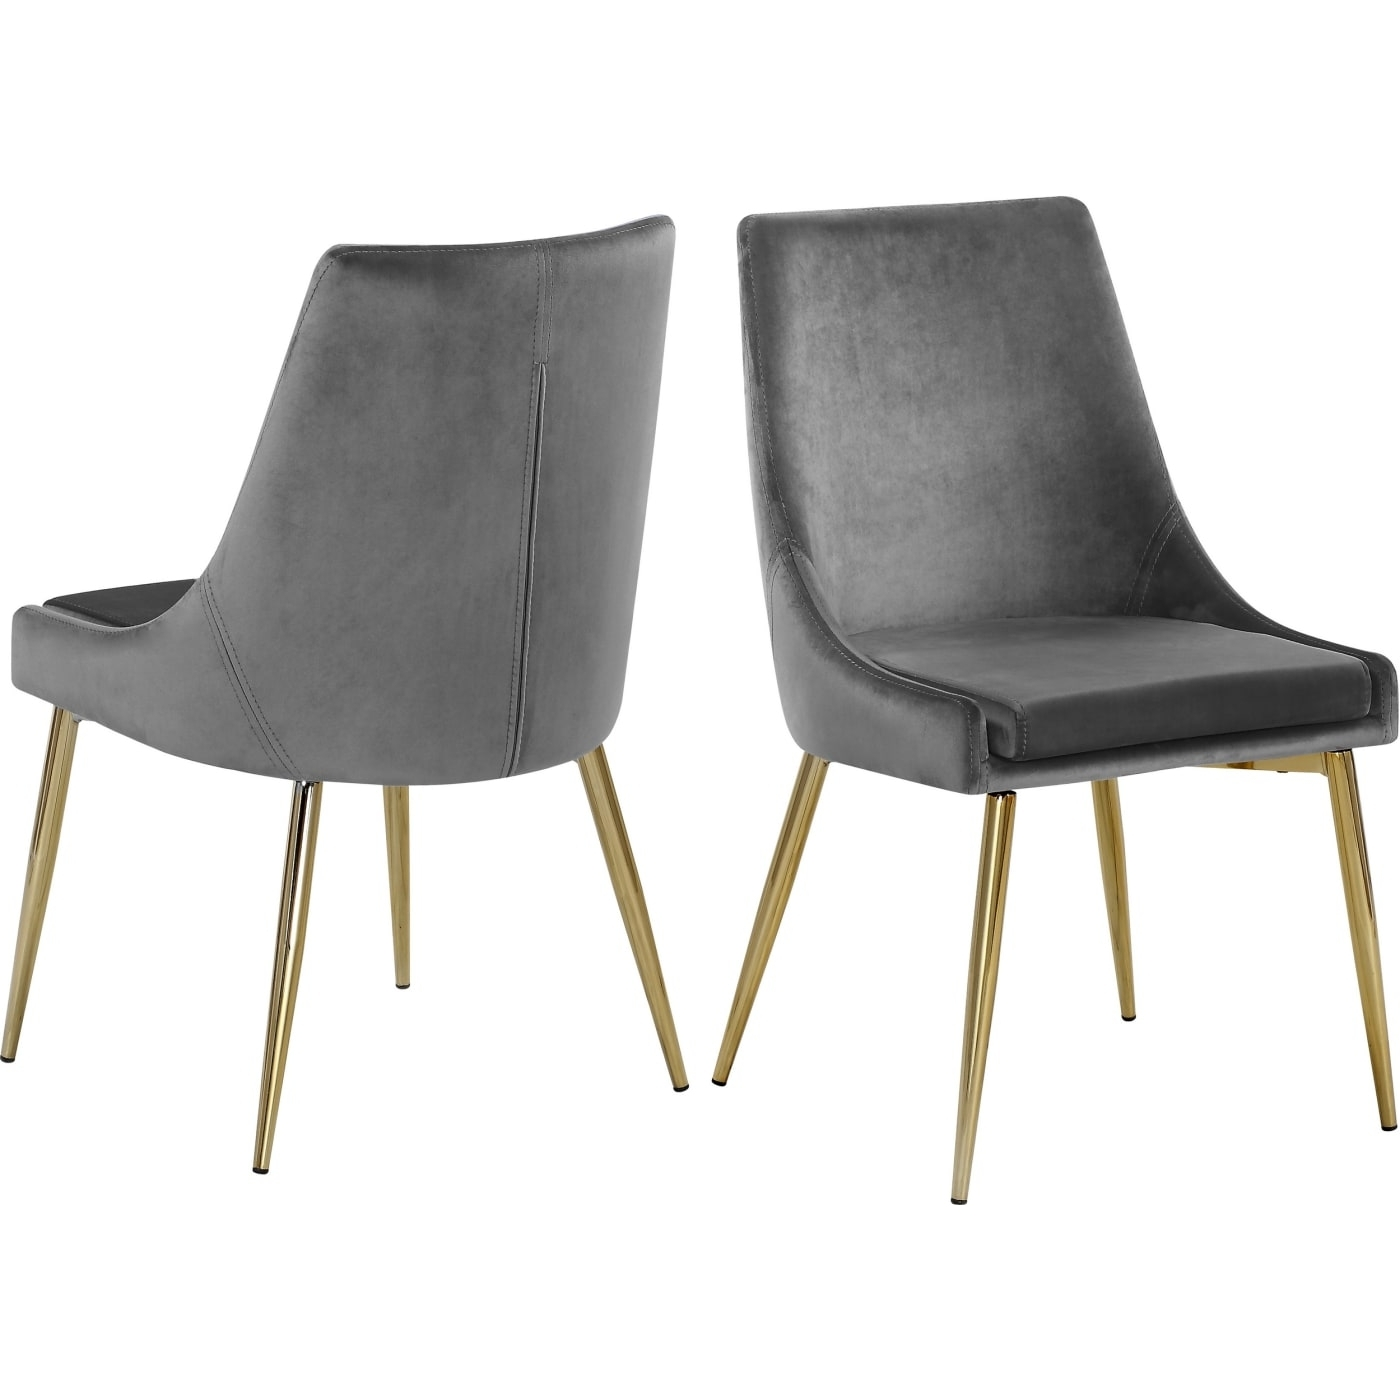 Newest Velvet Dining Chairs Pertaining To Meridian Karina Grey Velvet Dining Chair – Set Of 2 & Reviews (View 15 of 25)